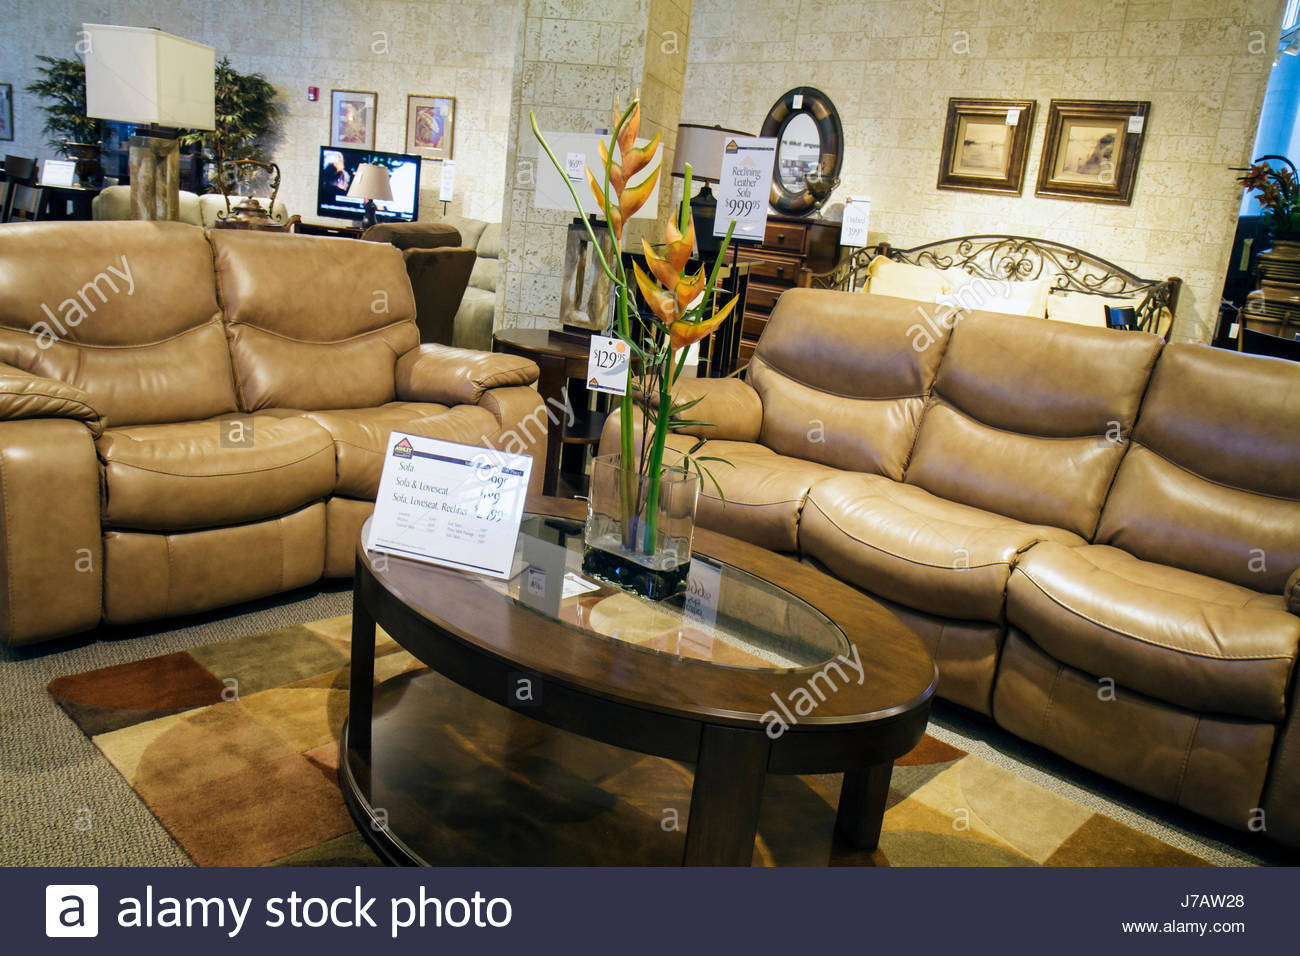 ashley furniture photos ashley furniture images alamy